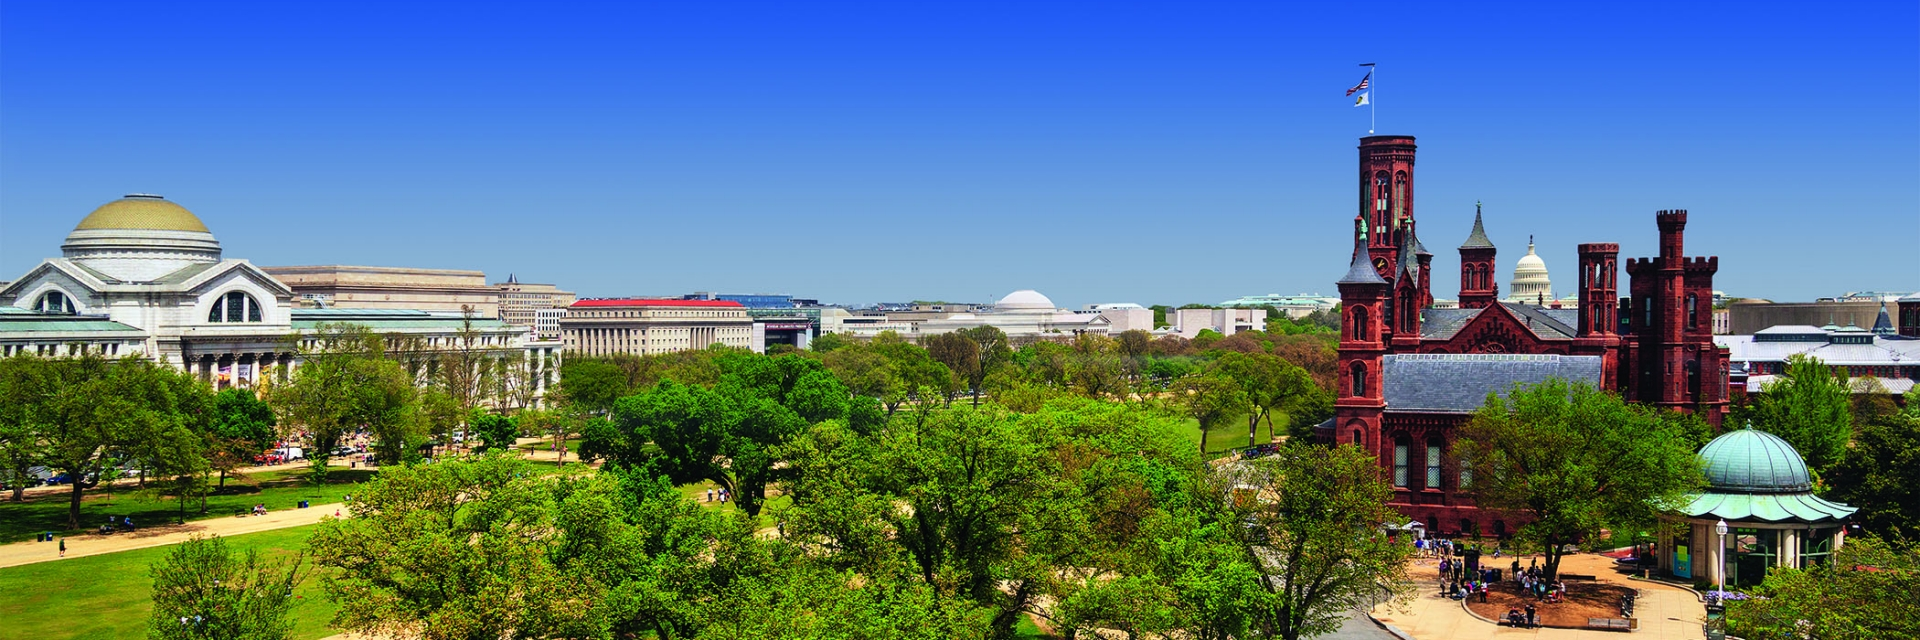 view of Castle and National Mall and Natural History Museum.